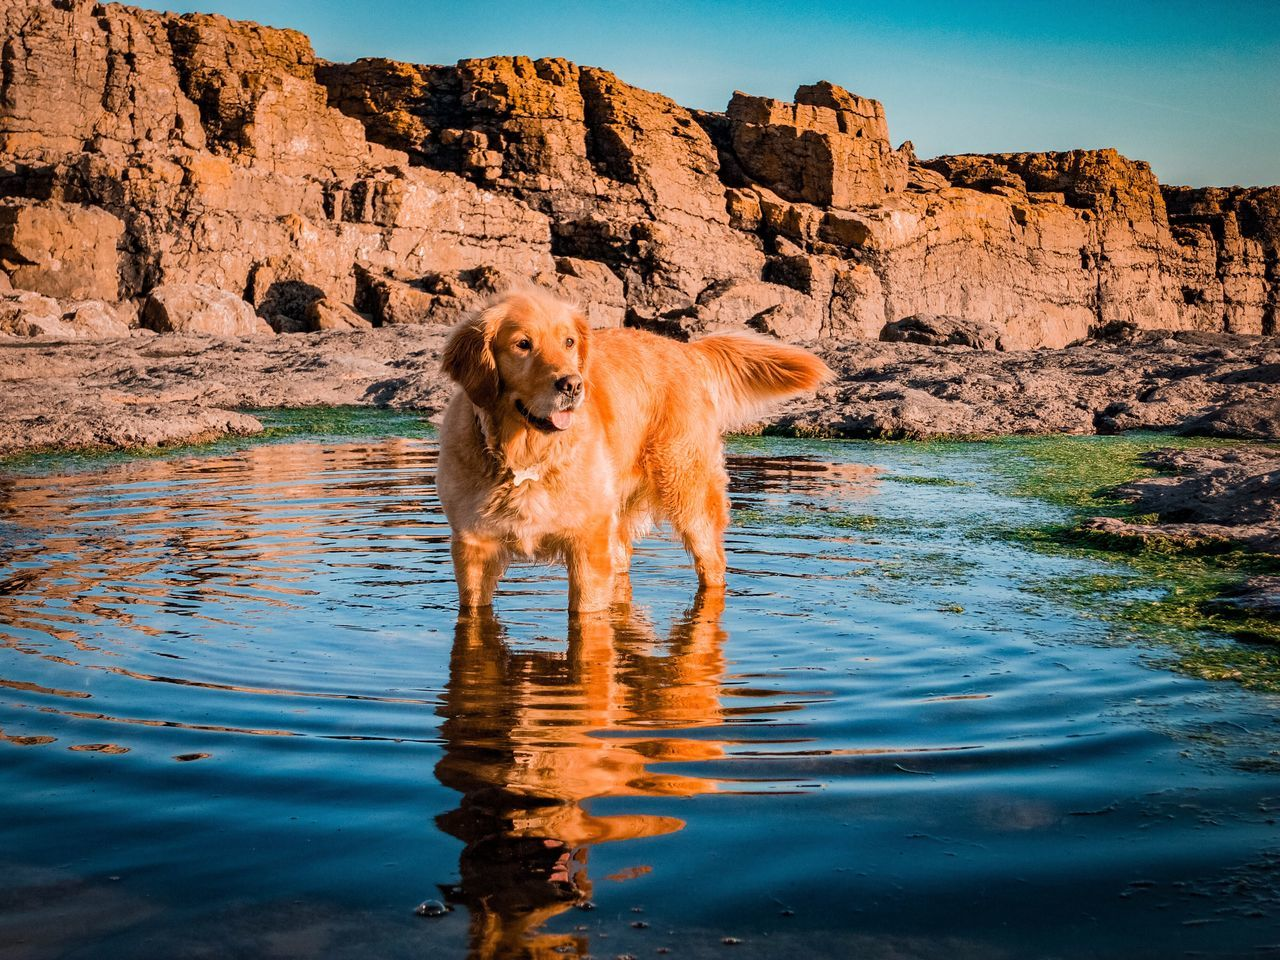 dog, water, one animal, pets, waterfront, mammal, rock - object, domestic animals, animal themes, rock formation, outdoors, day, lake, nature, full length, beauty in nature, no people, retriever